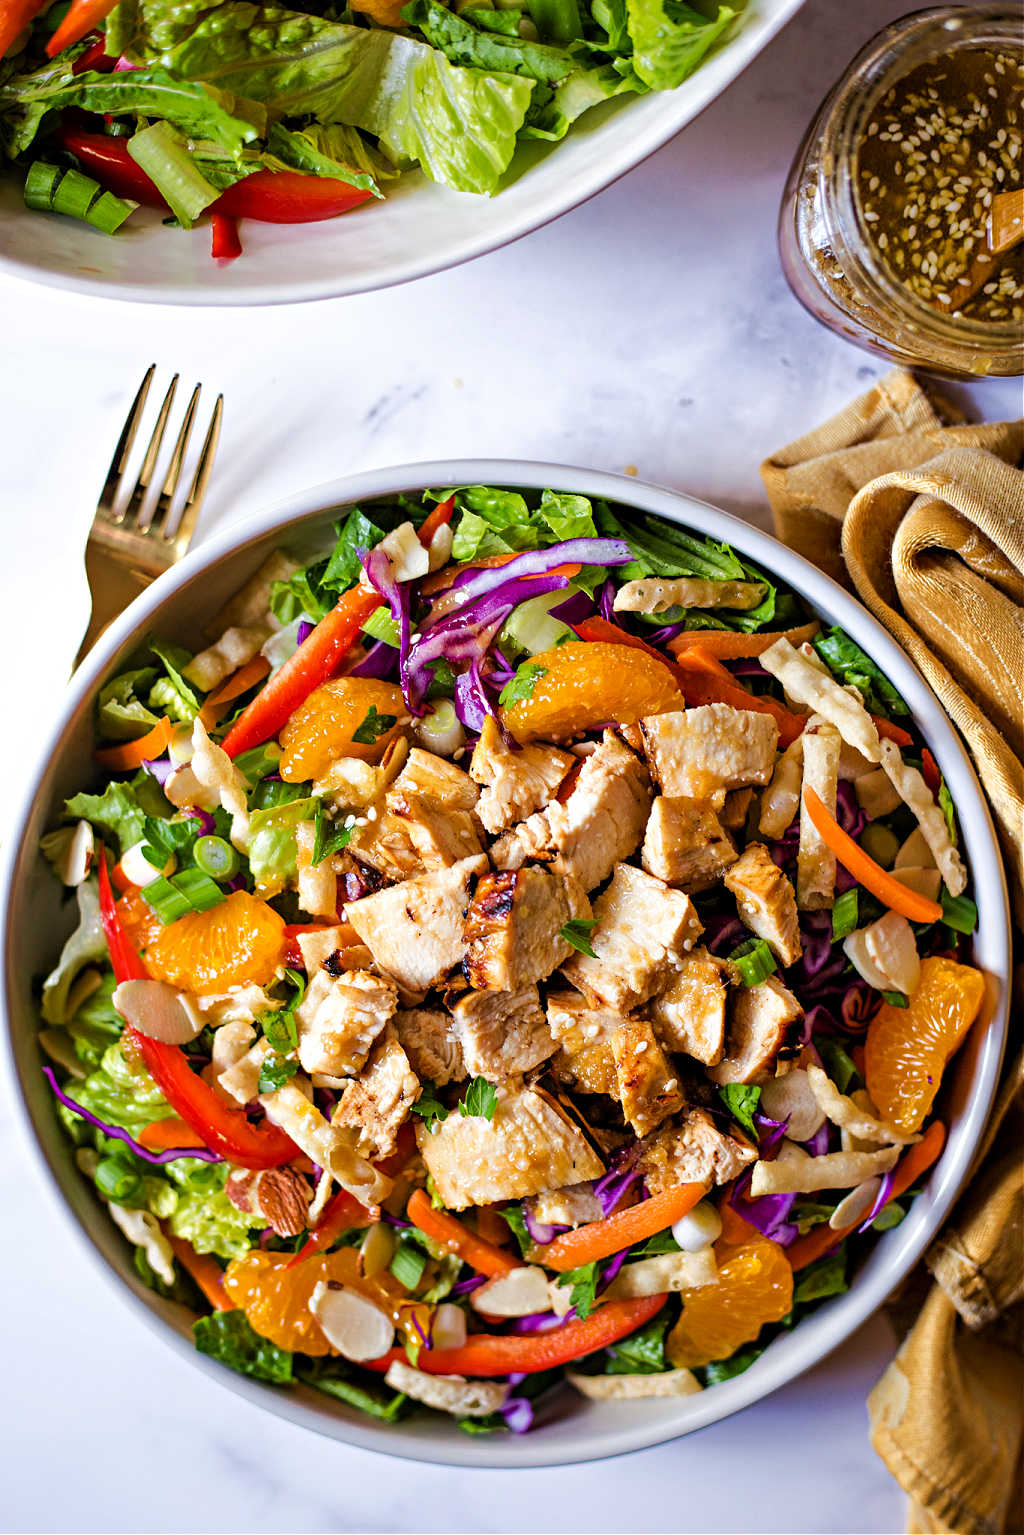 Asian Sesame Salad with Chicken in a bowl with a fork and jar of dressing on a table.